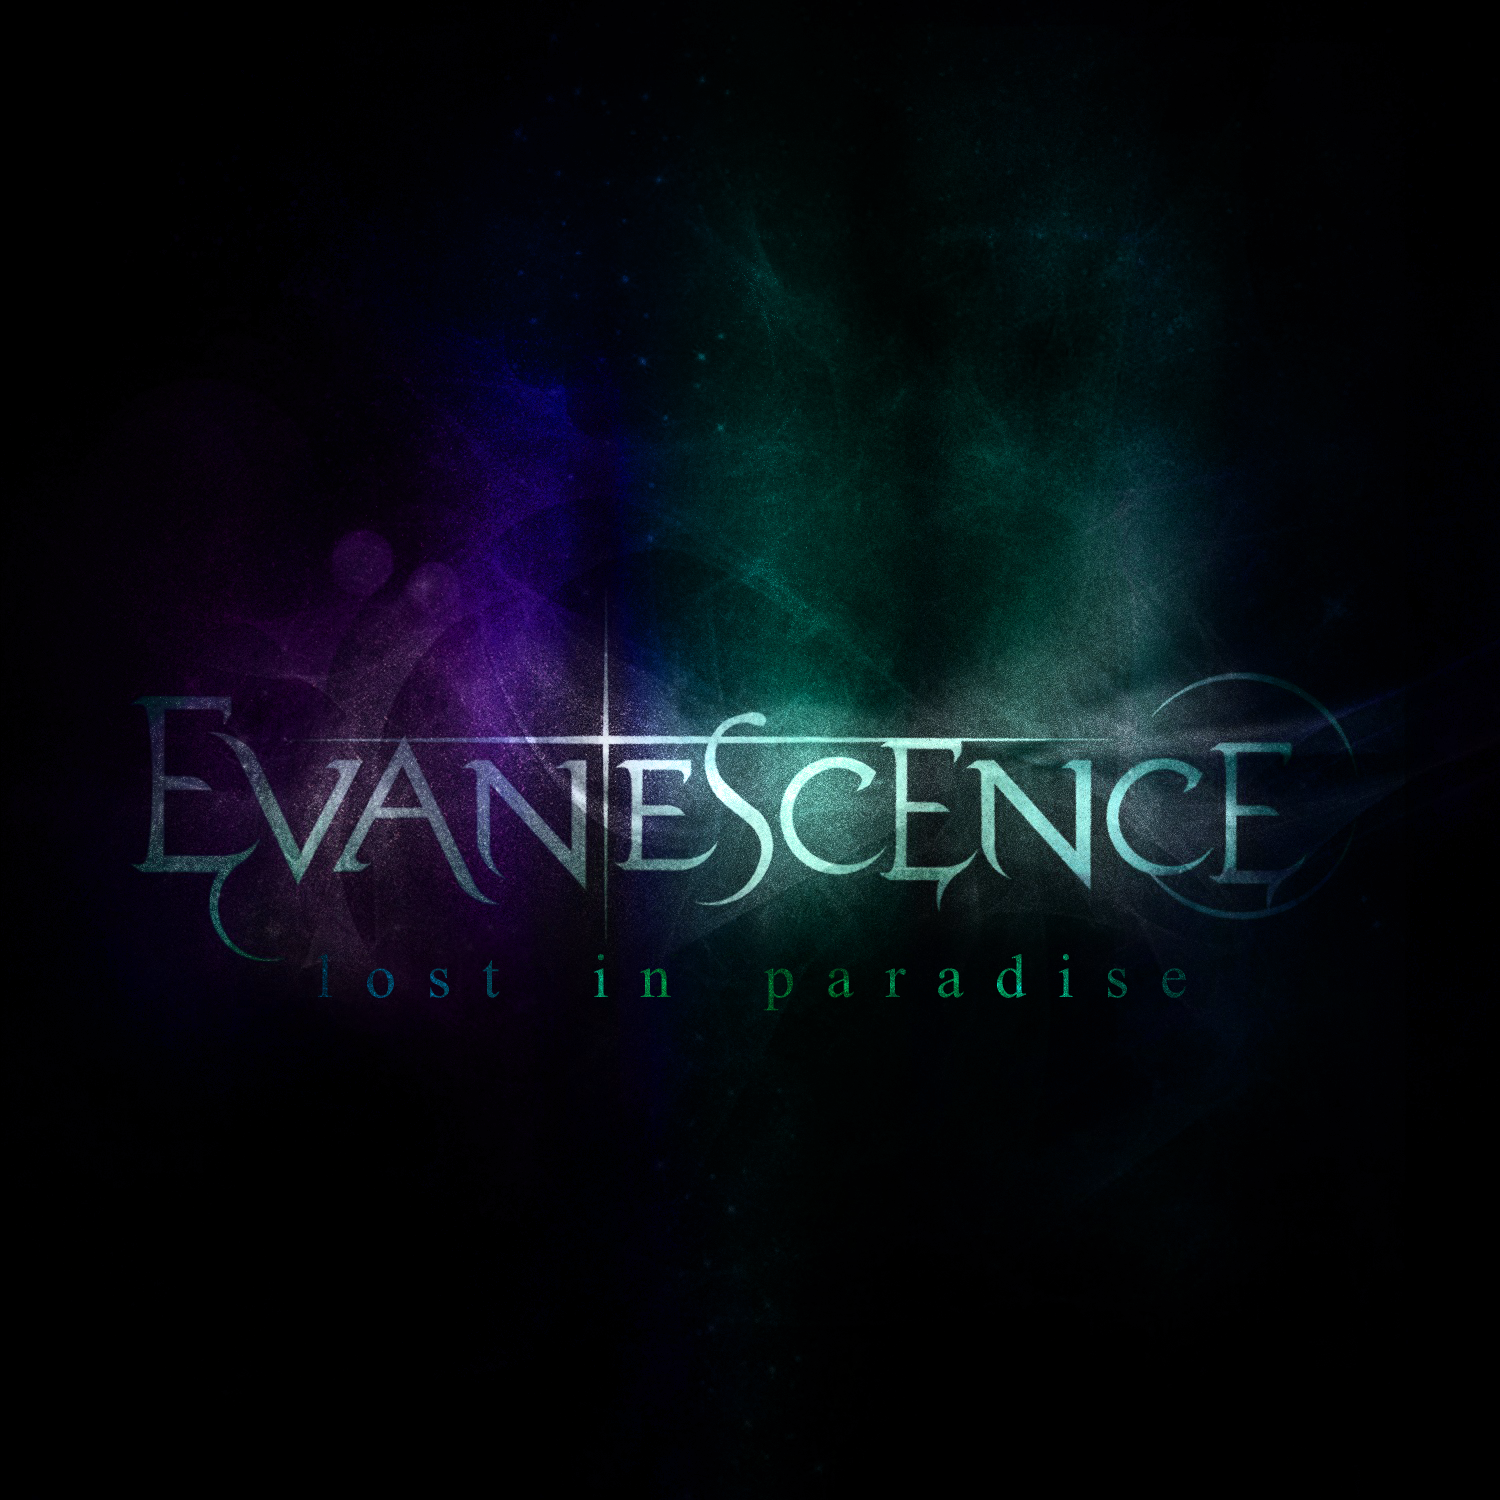 evanescence anywhere but home download: